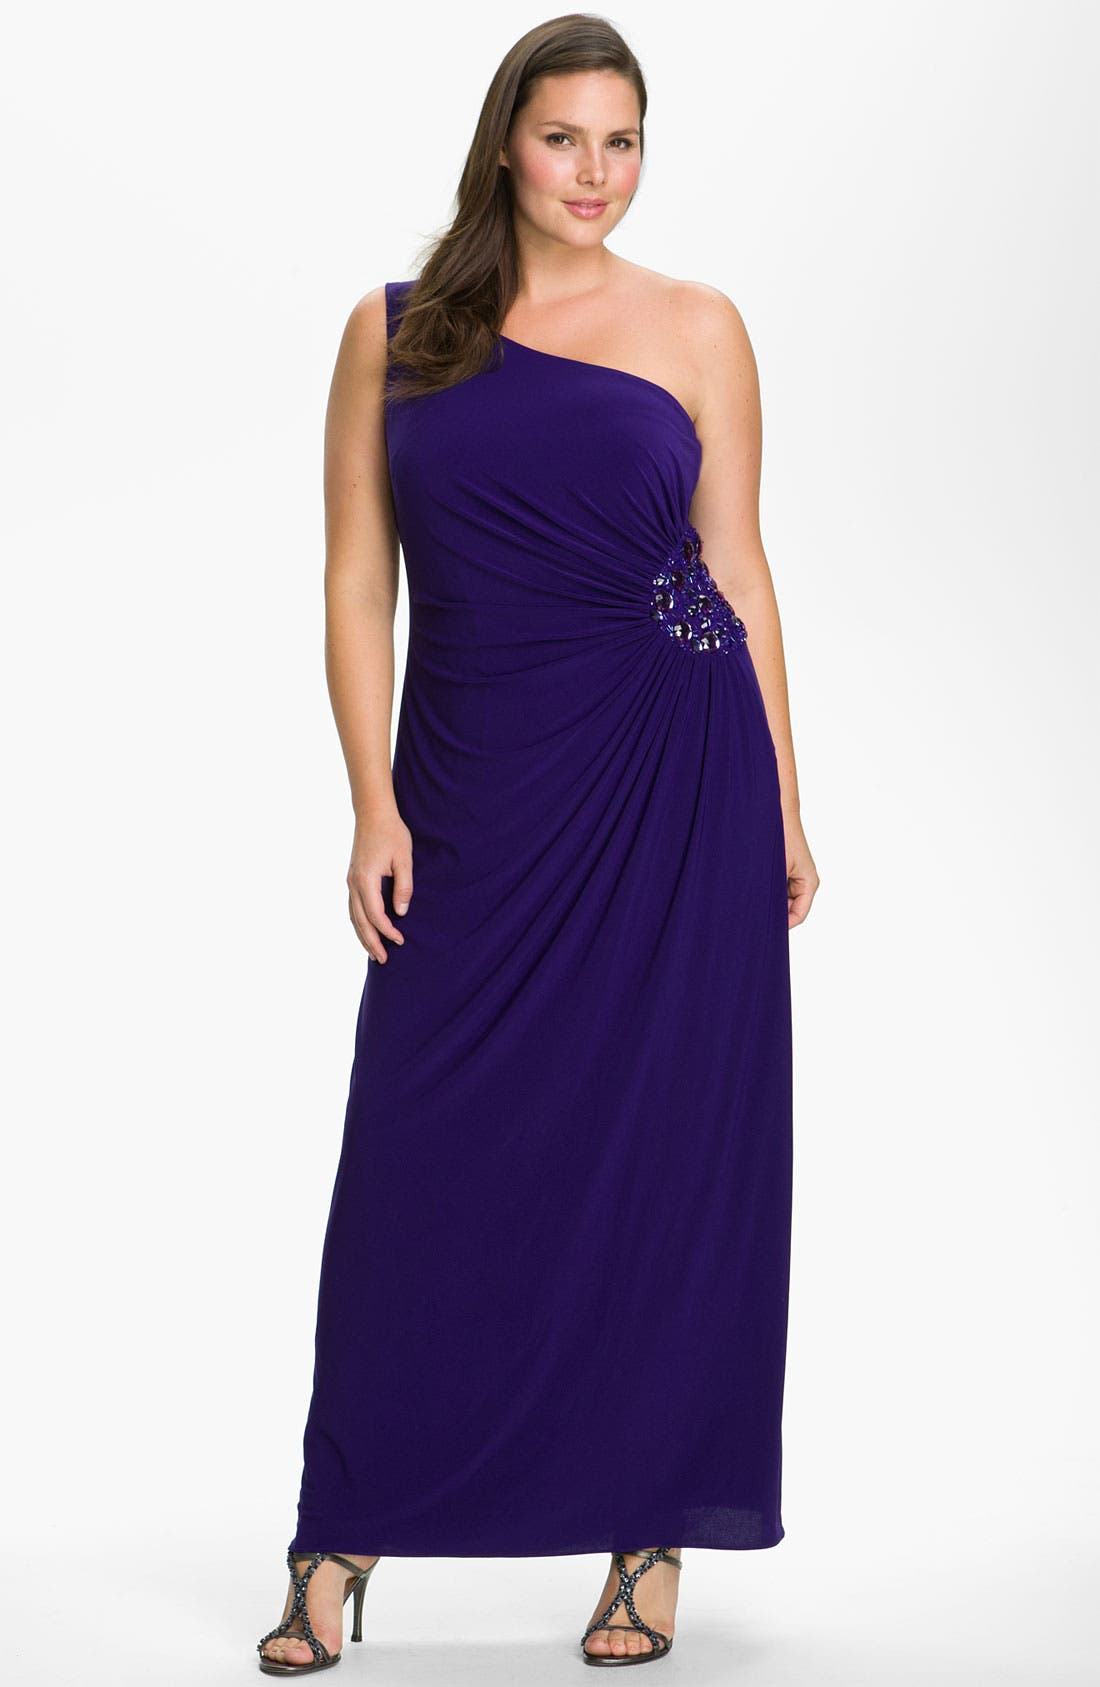 Alternate Image 1 Selected - JS Boutique Beaded One Shoulder Jersey Gown (Plus)